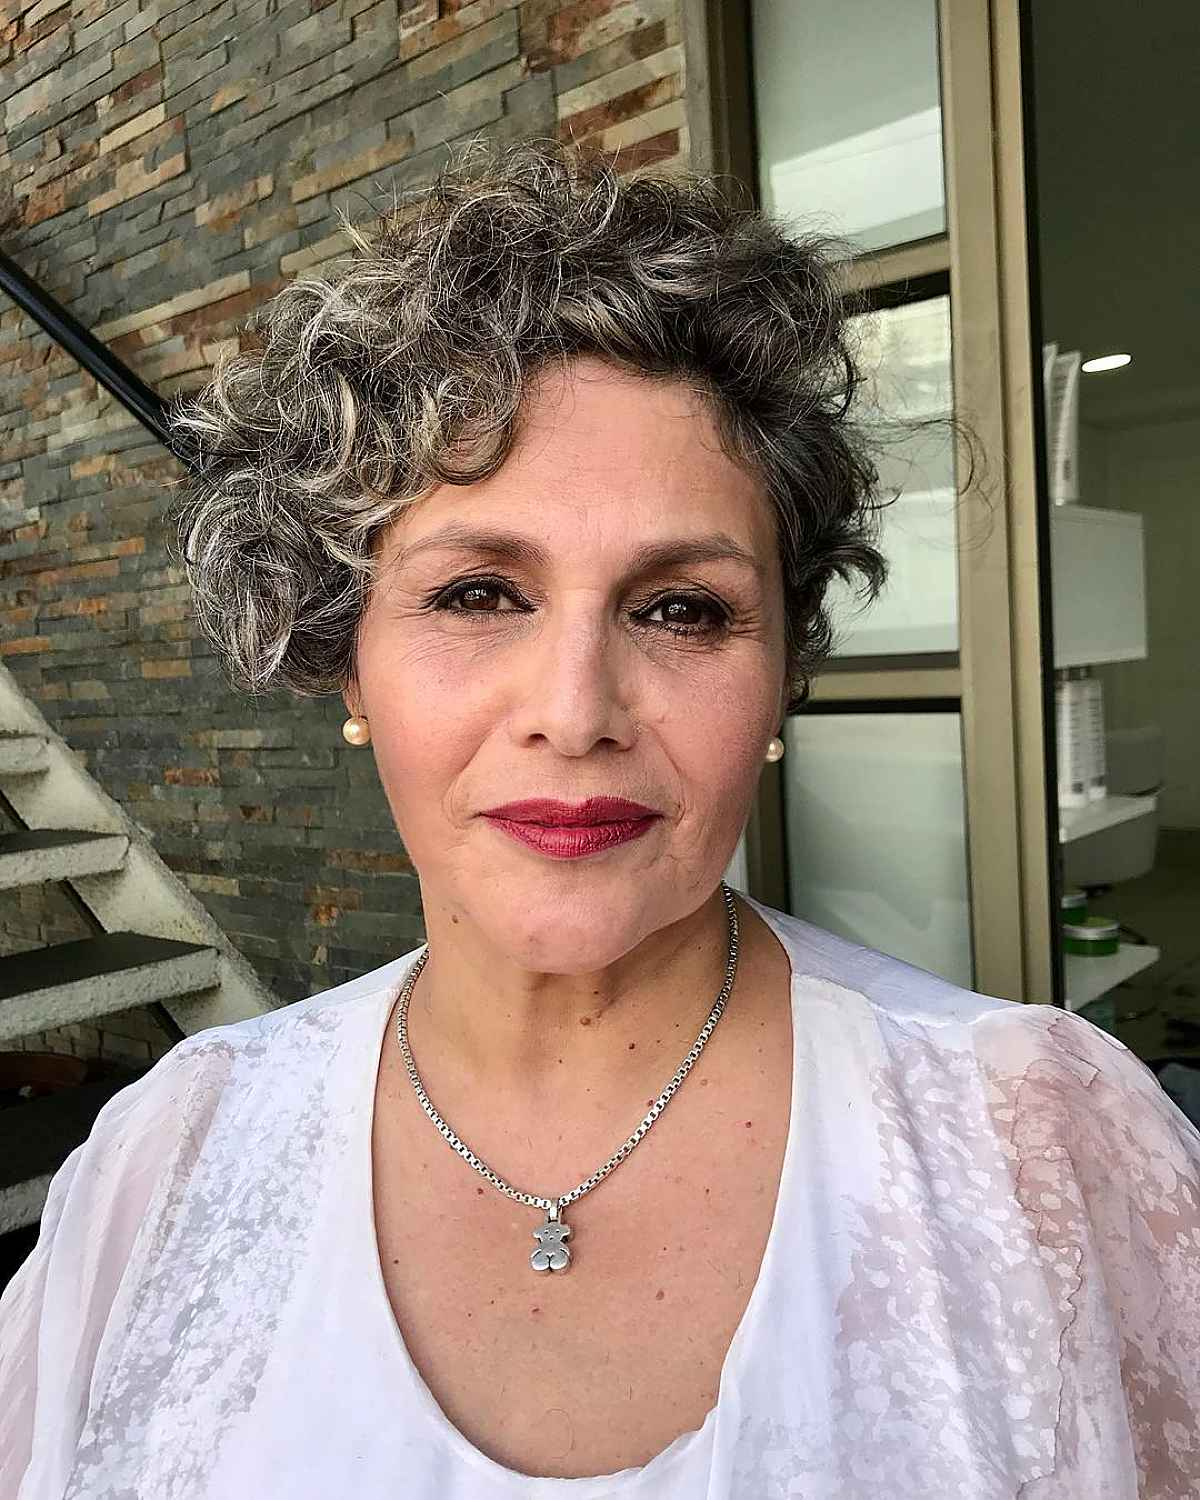 25 Asymmetrical Haircuts for Women Over 60 with Sassy Personalities